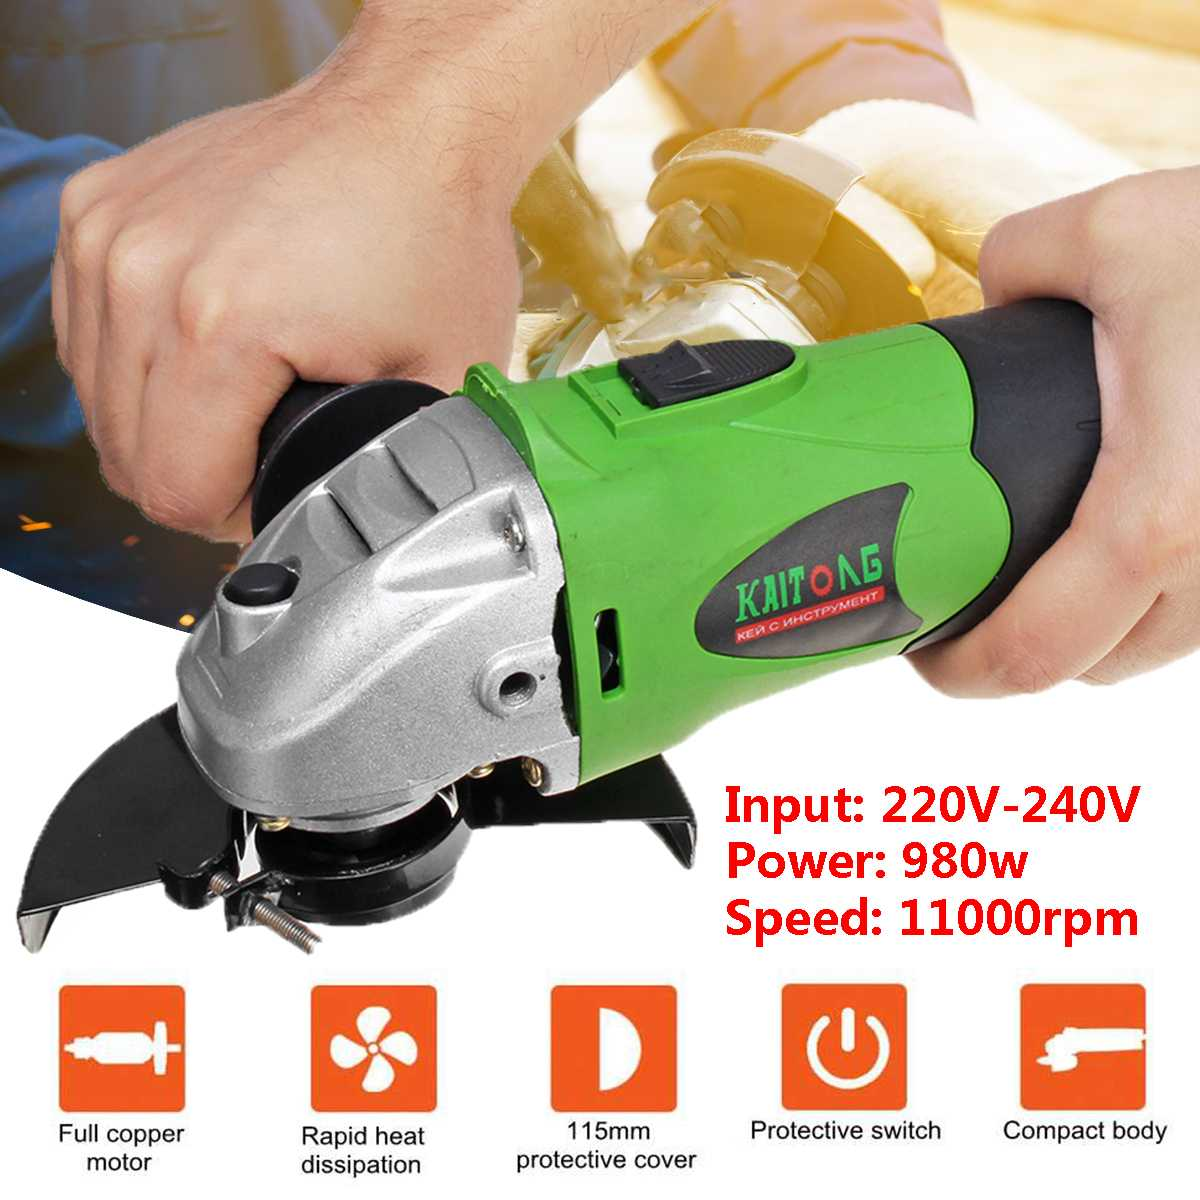 Metal Cutting Tool 980W Electric Angle Grinder 115 125mm Grinding Machine 11000RPM Adjustable Anti Slip EU